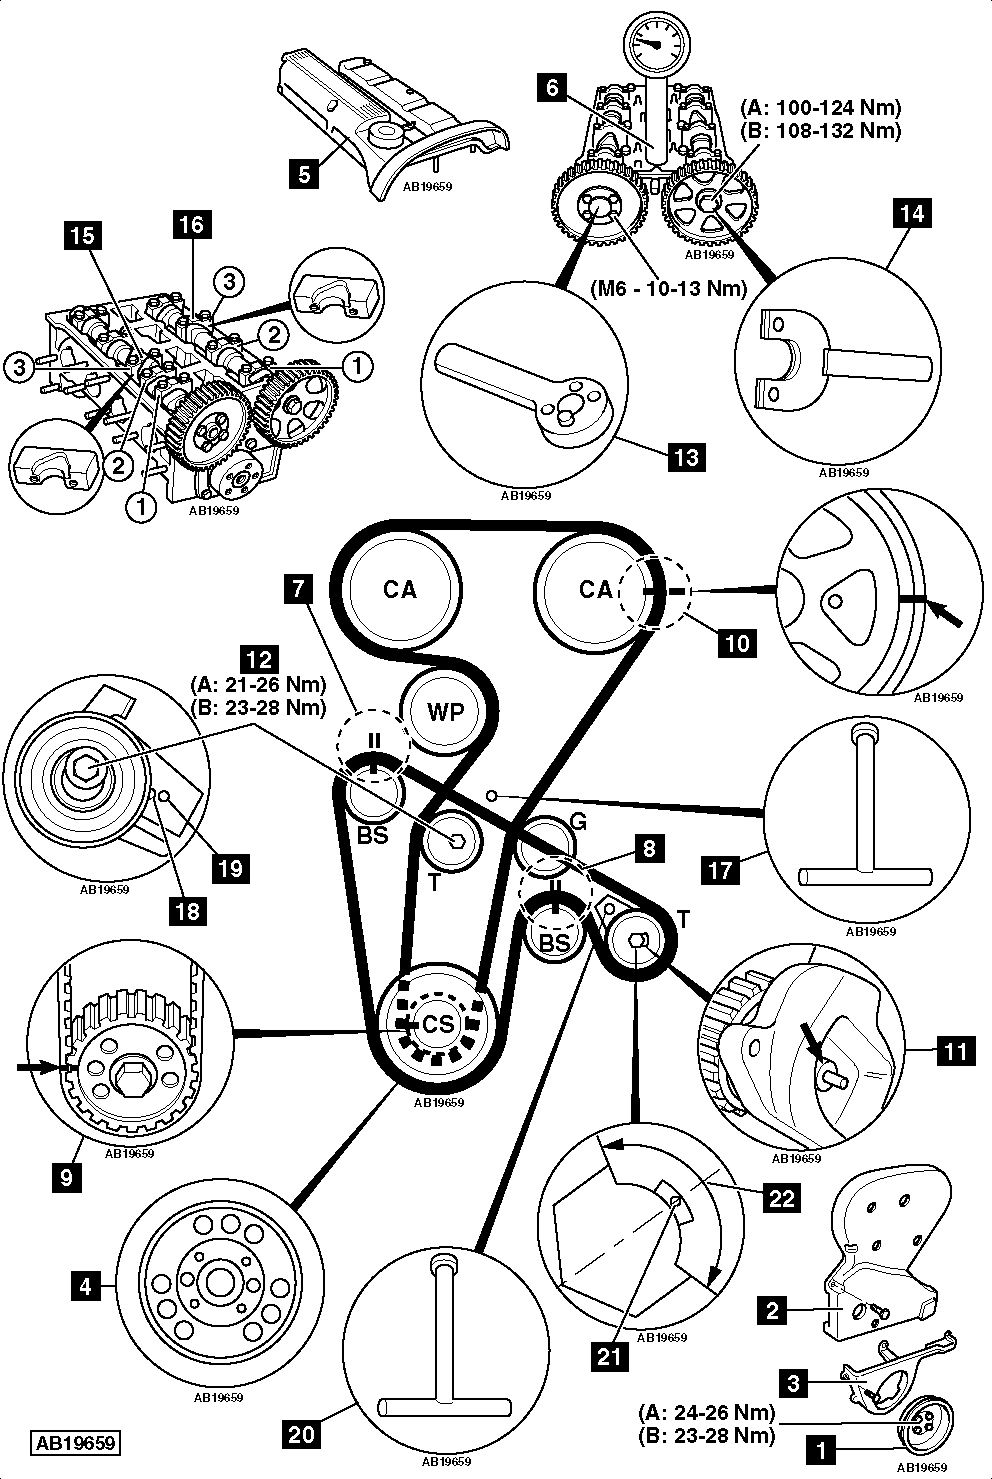 1996 Volvo 850 Electric Cooling Fan System Schematic And Wiring Diagram besides 1993 Jeep Wrangler Fuse Panel Diagram in addition P 0900c152801bf5b9 moreover 2006 Vw Passat Fuse Box Diagram Image Details further Auto Alarm RFID For Car Security 880704569. on volkswagen jetta schematic